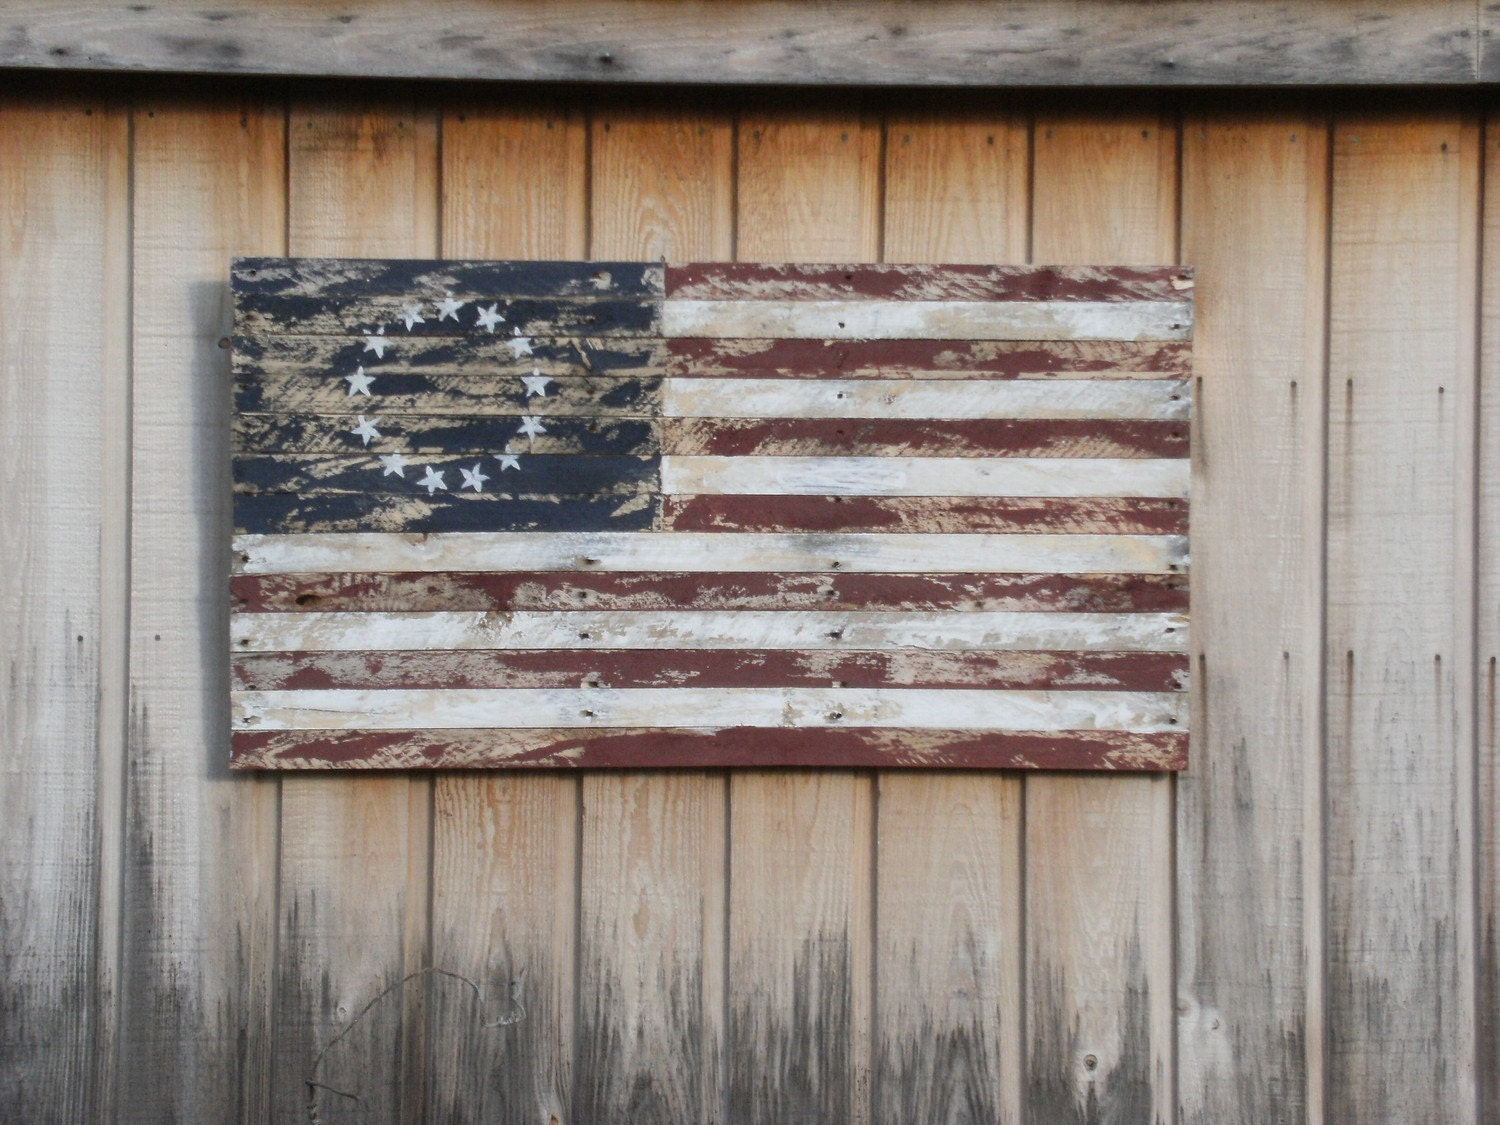 Reclaimed Wood Wall Hanging Walls American Flag And 570x500 · Request ... - American Flag Reclaimed Wood Wall Pictures To Pin On Pinterest